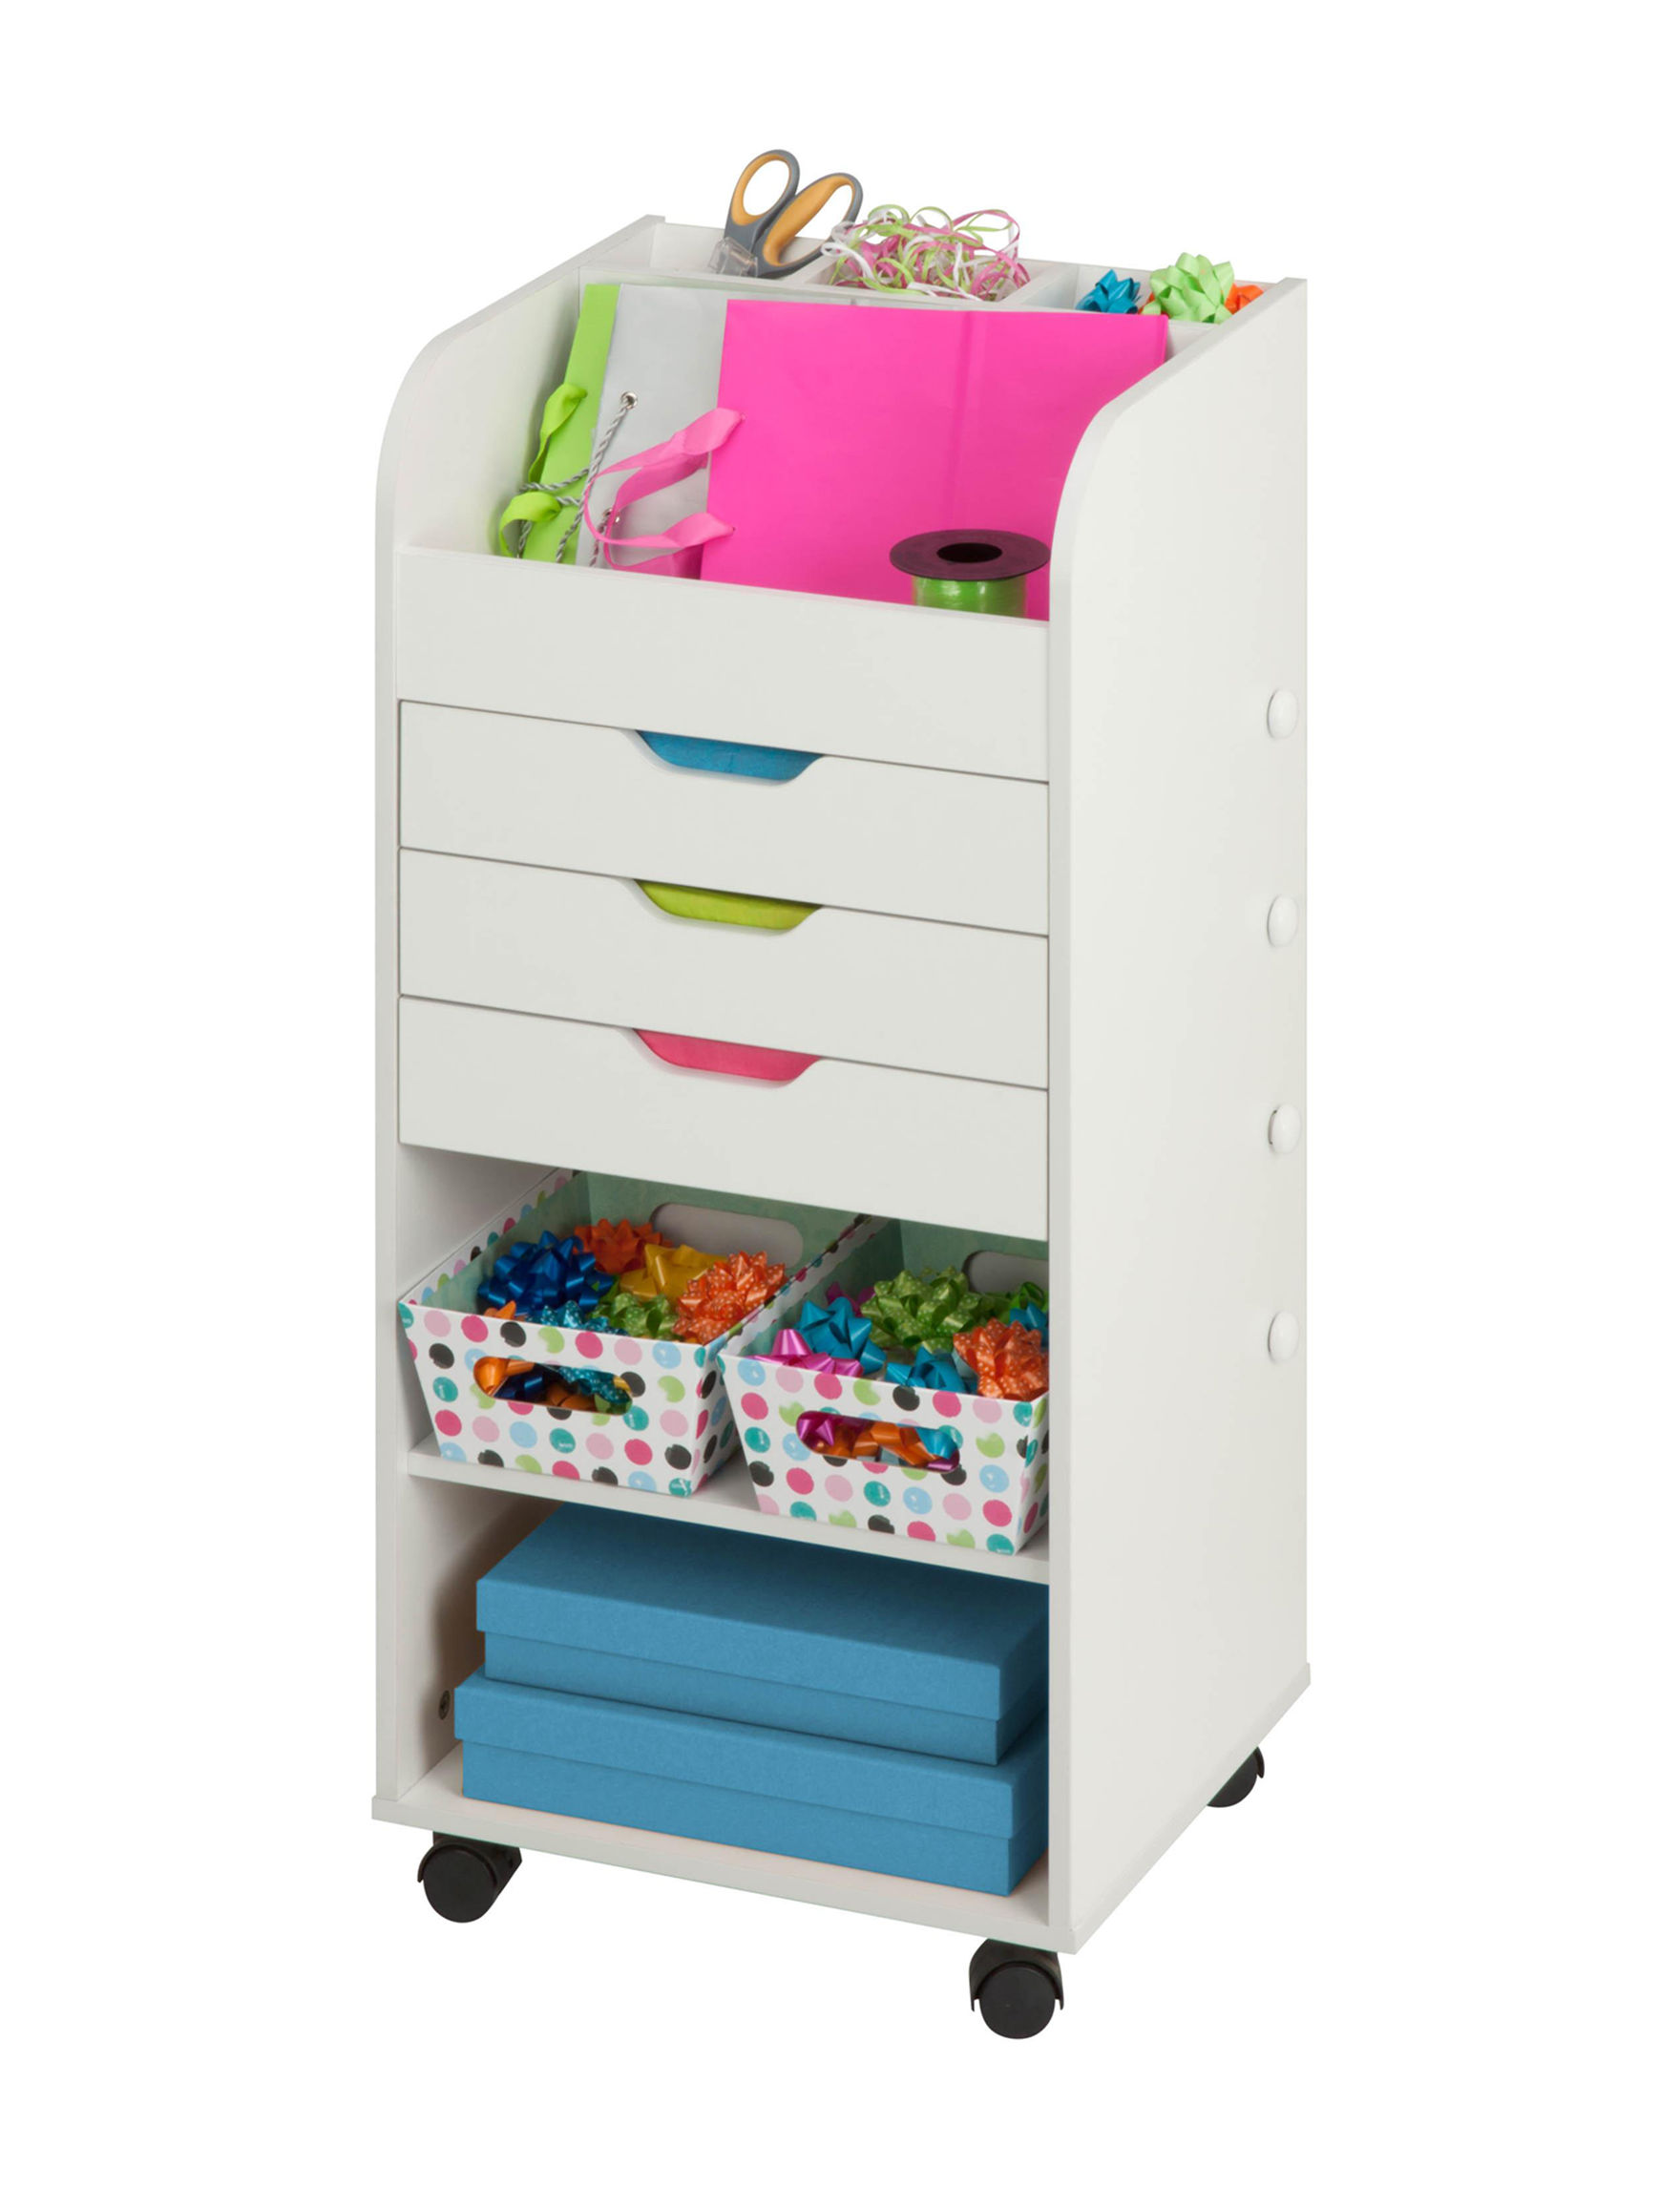 Honey-Can-Do International White Carts & Drawers Storage & Organization